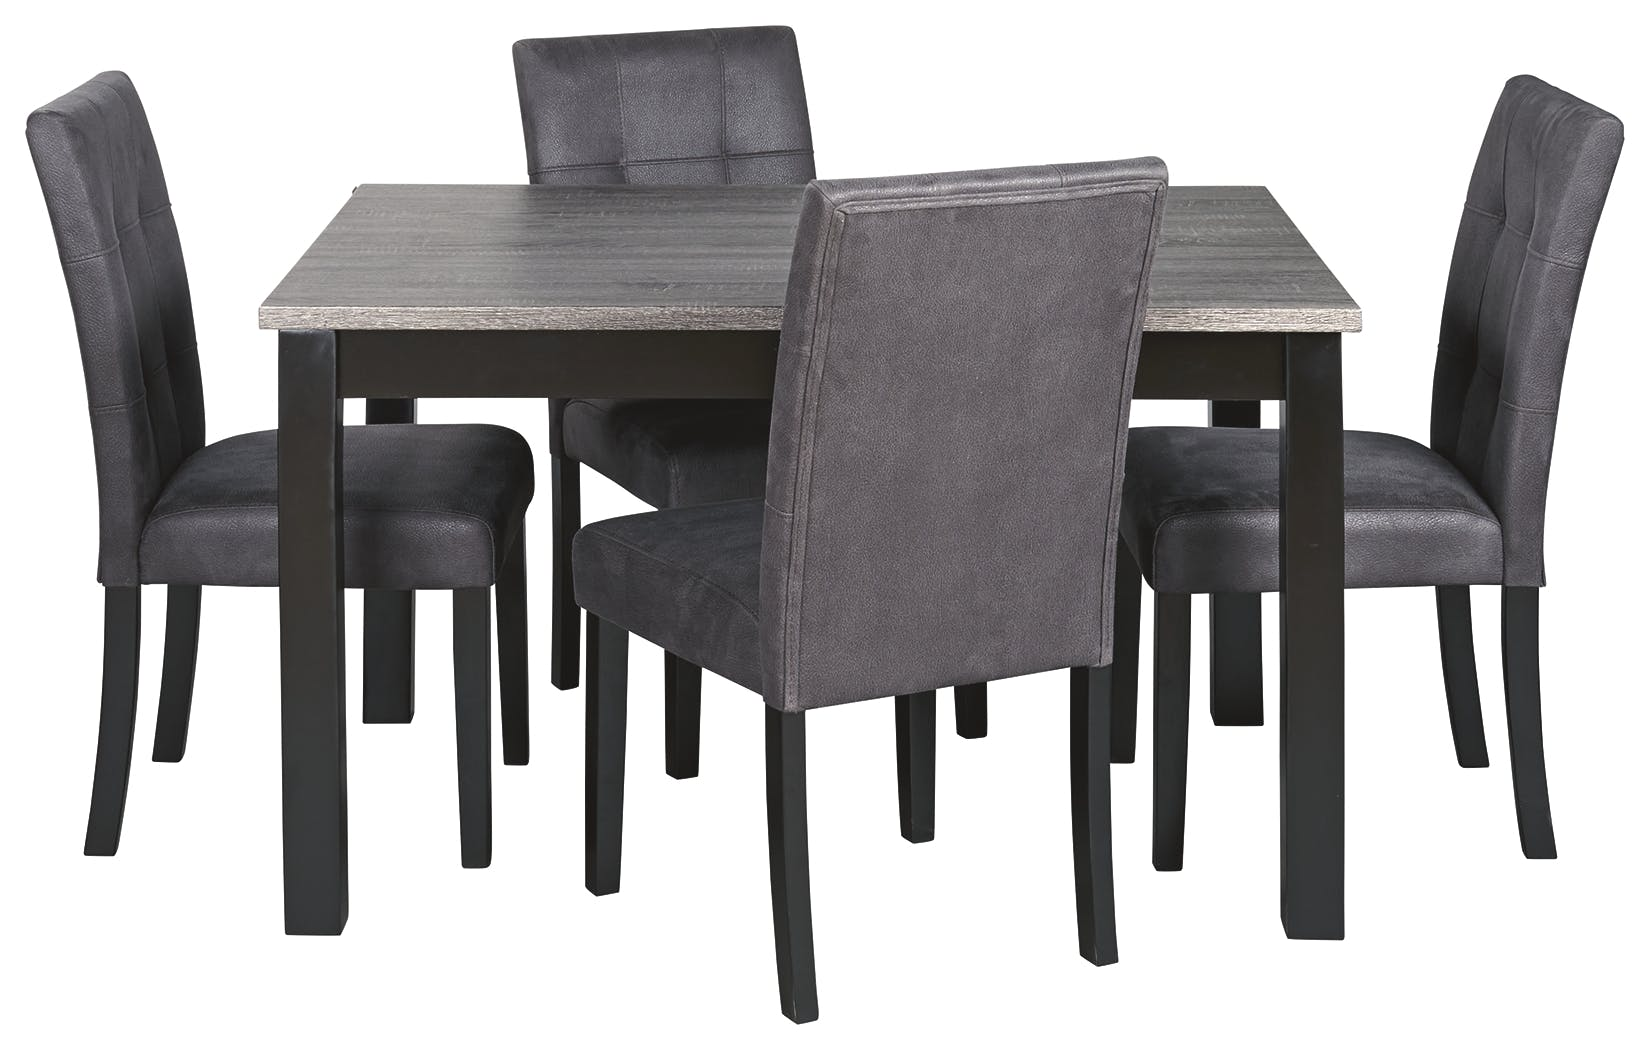 Picture of: Signature Design By Ashley Garvine Dining Room Table And Chairs Set Of 5 D161 225 Markson S